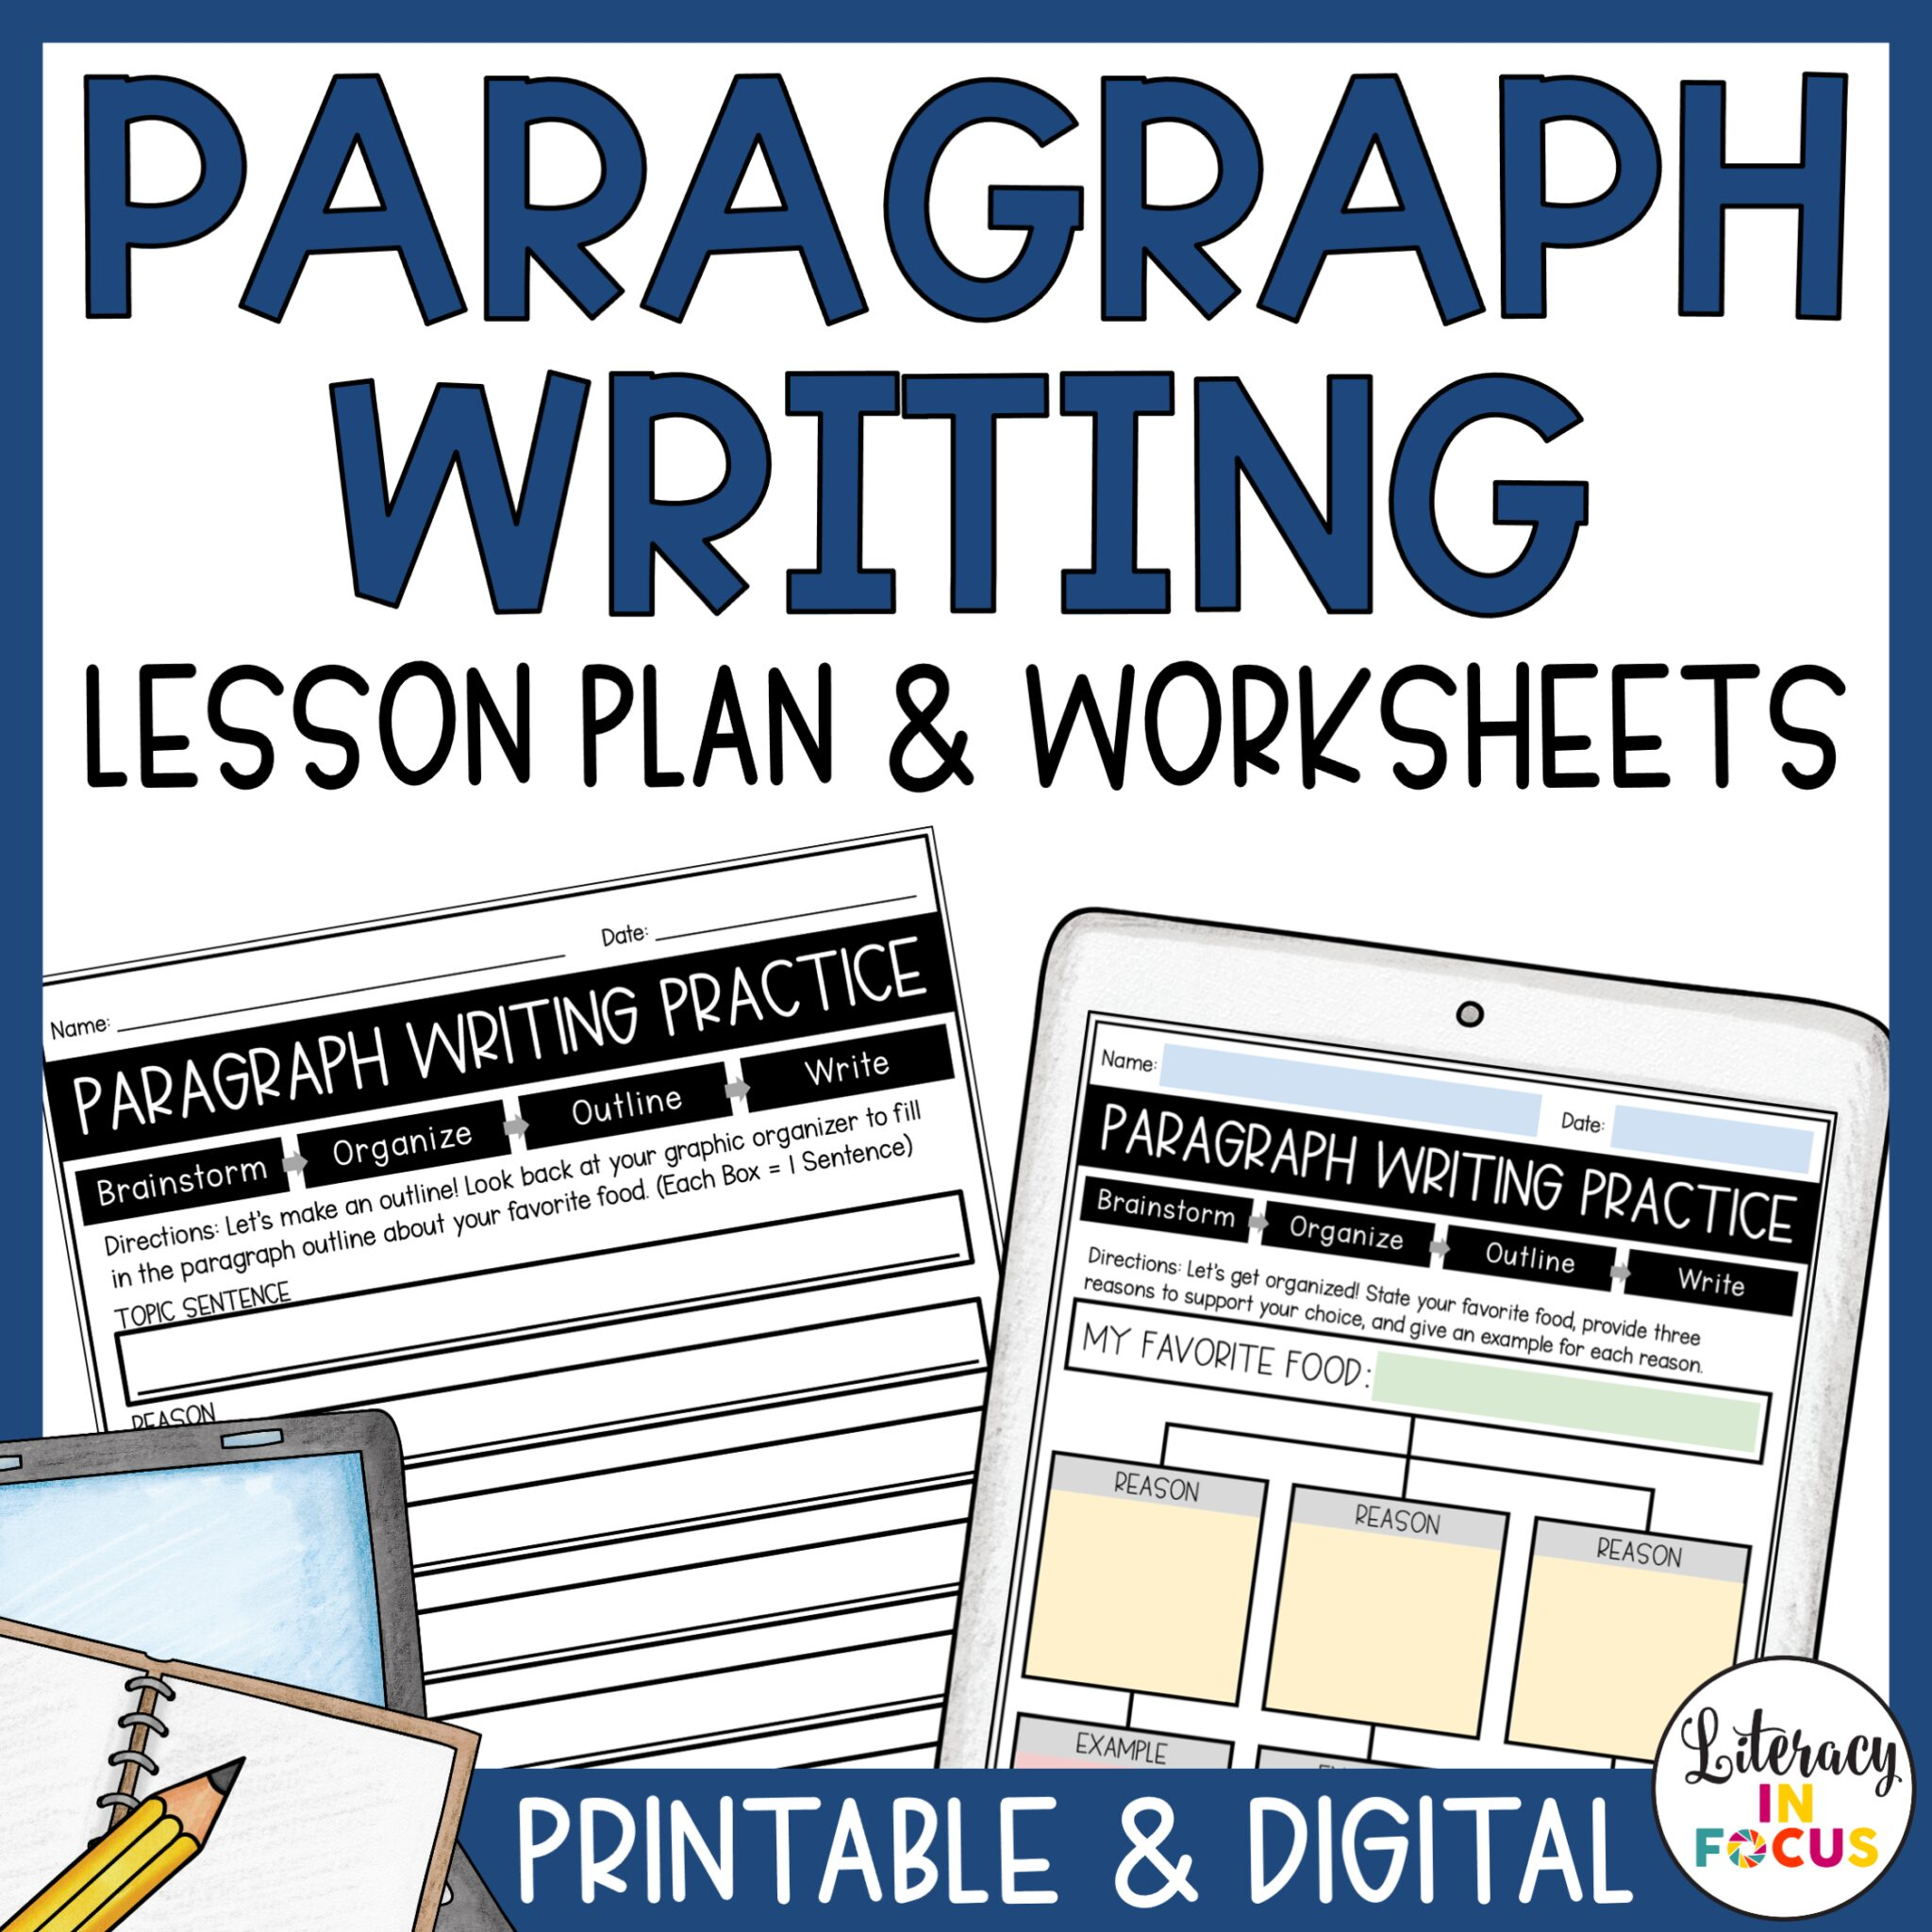 Paragraph Writing Lesson Plan and Worksheets